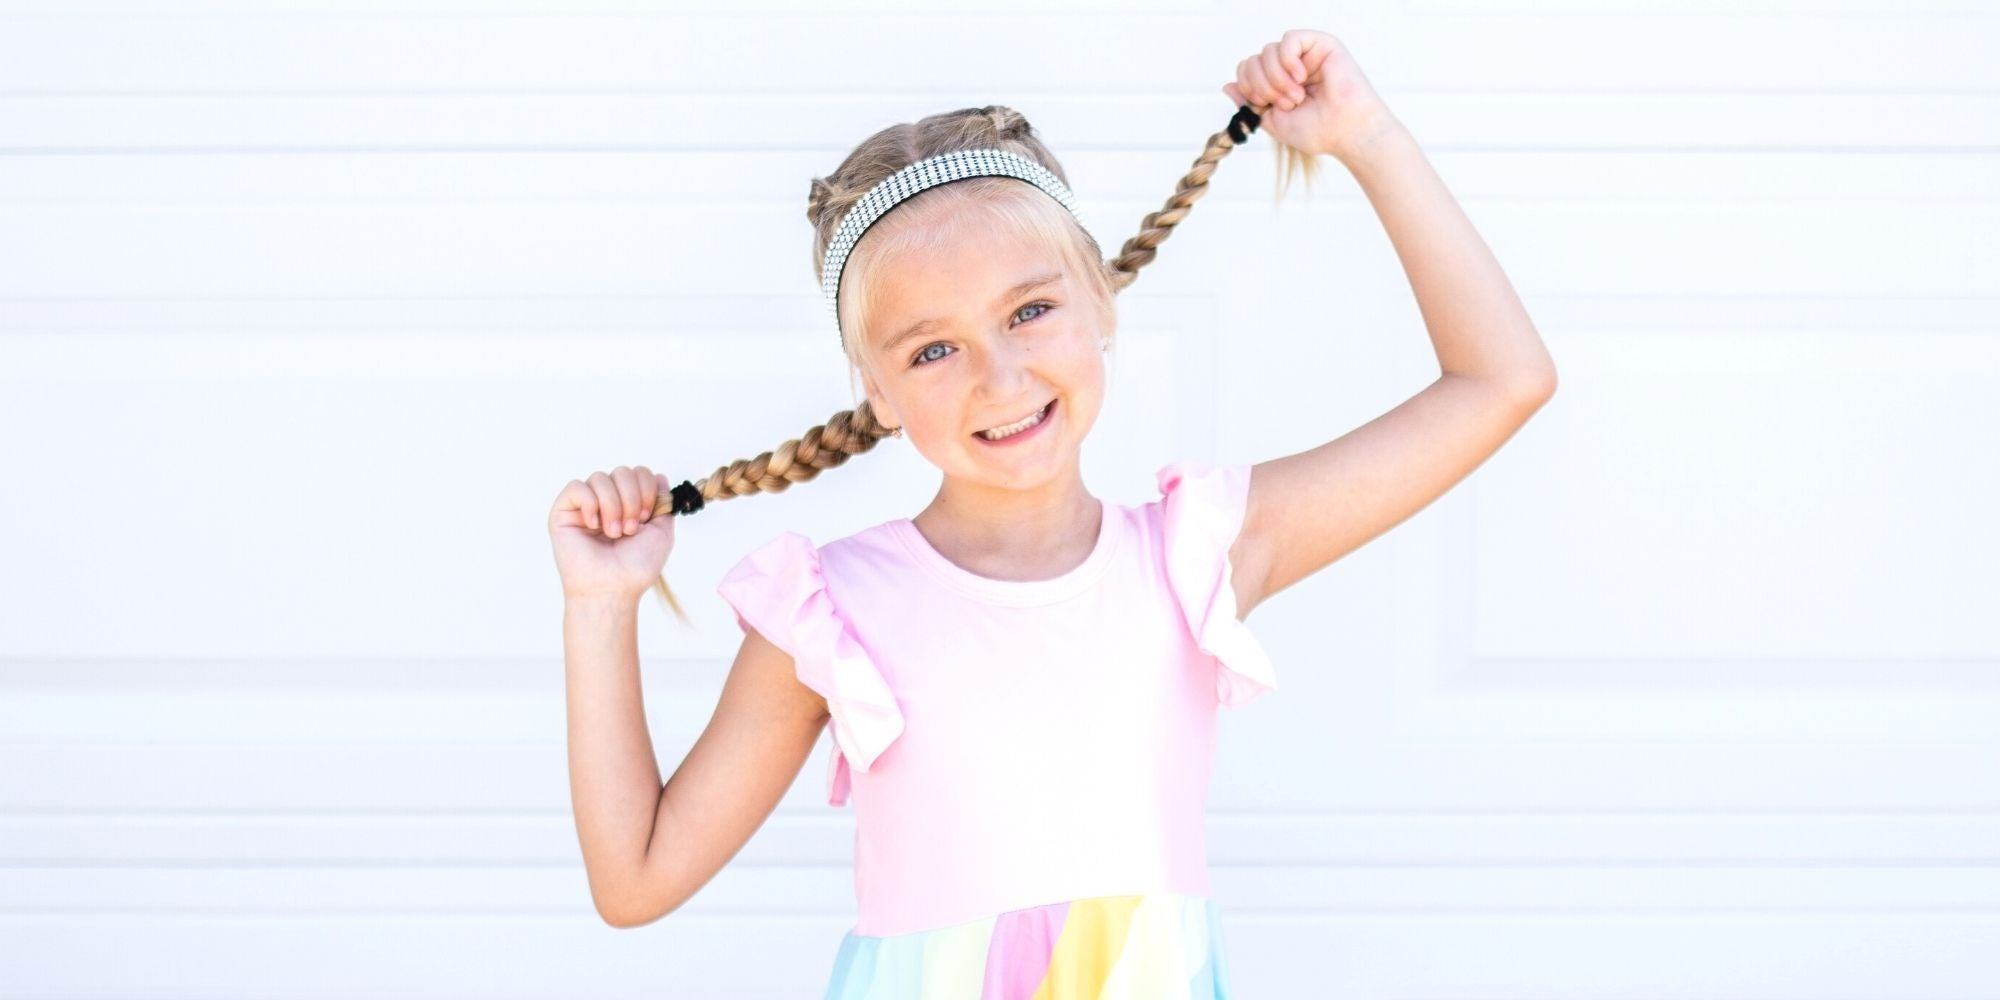 frog sac headbands for girls hair accessories for kids